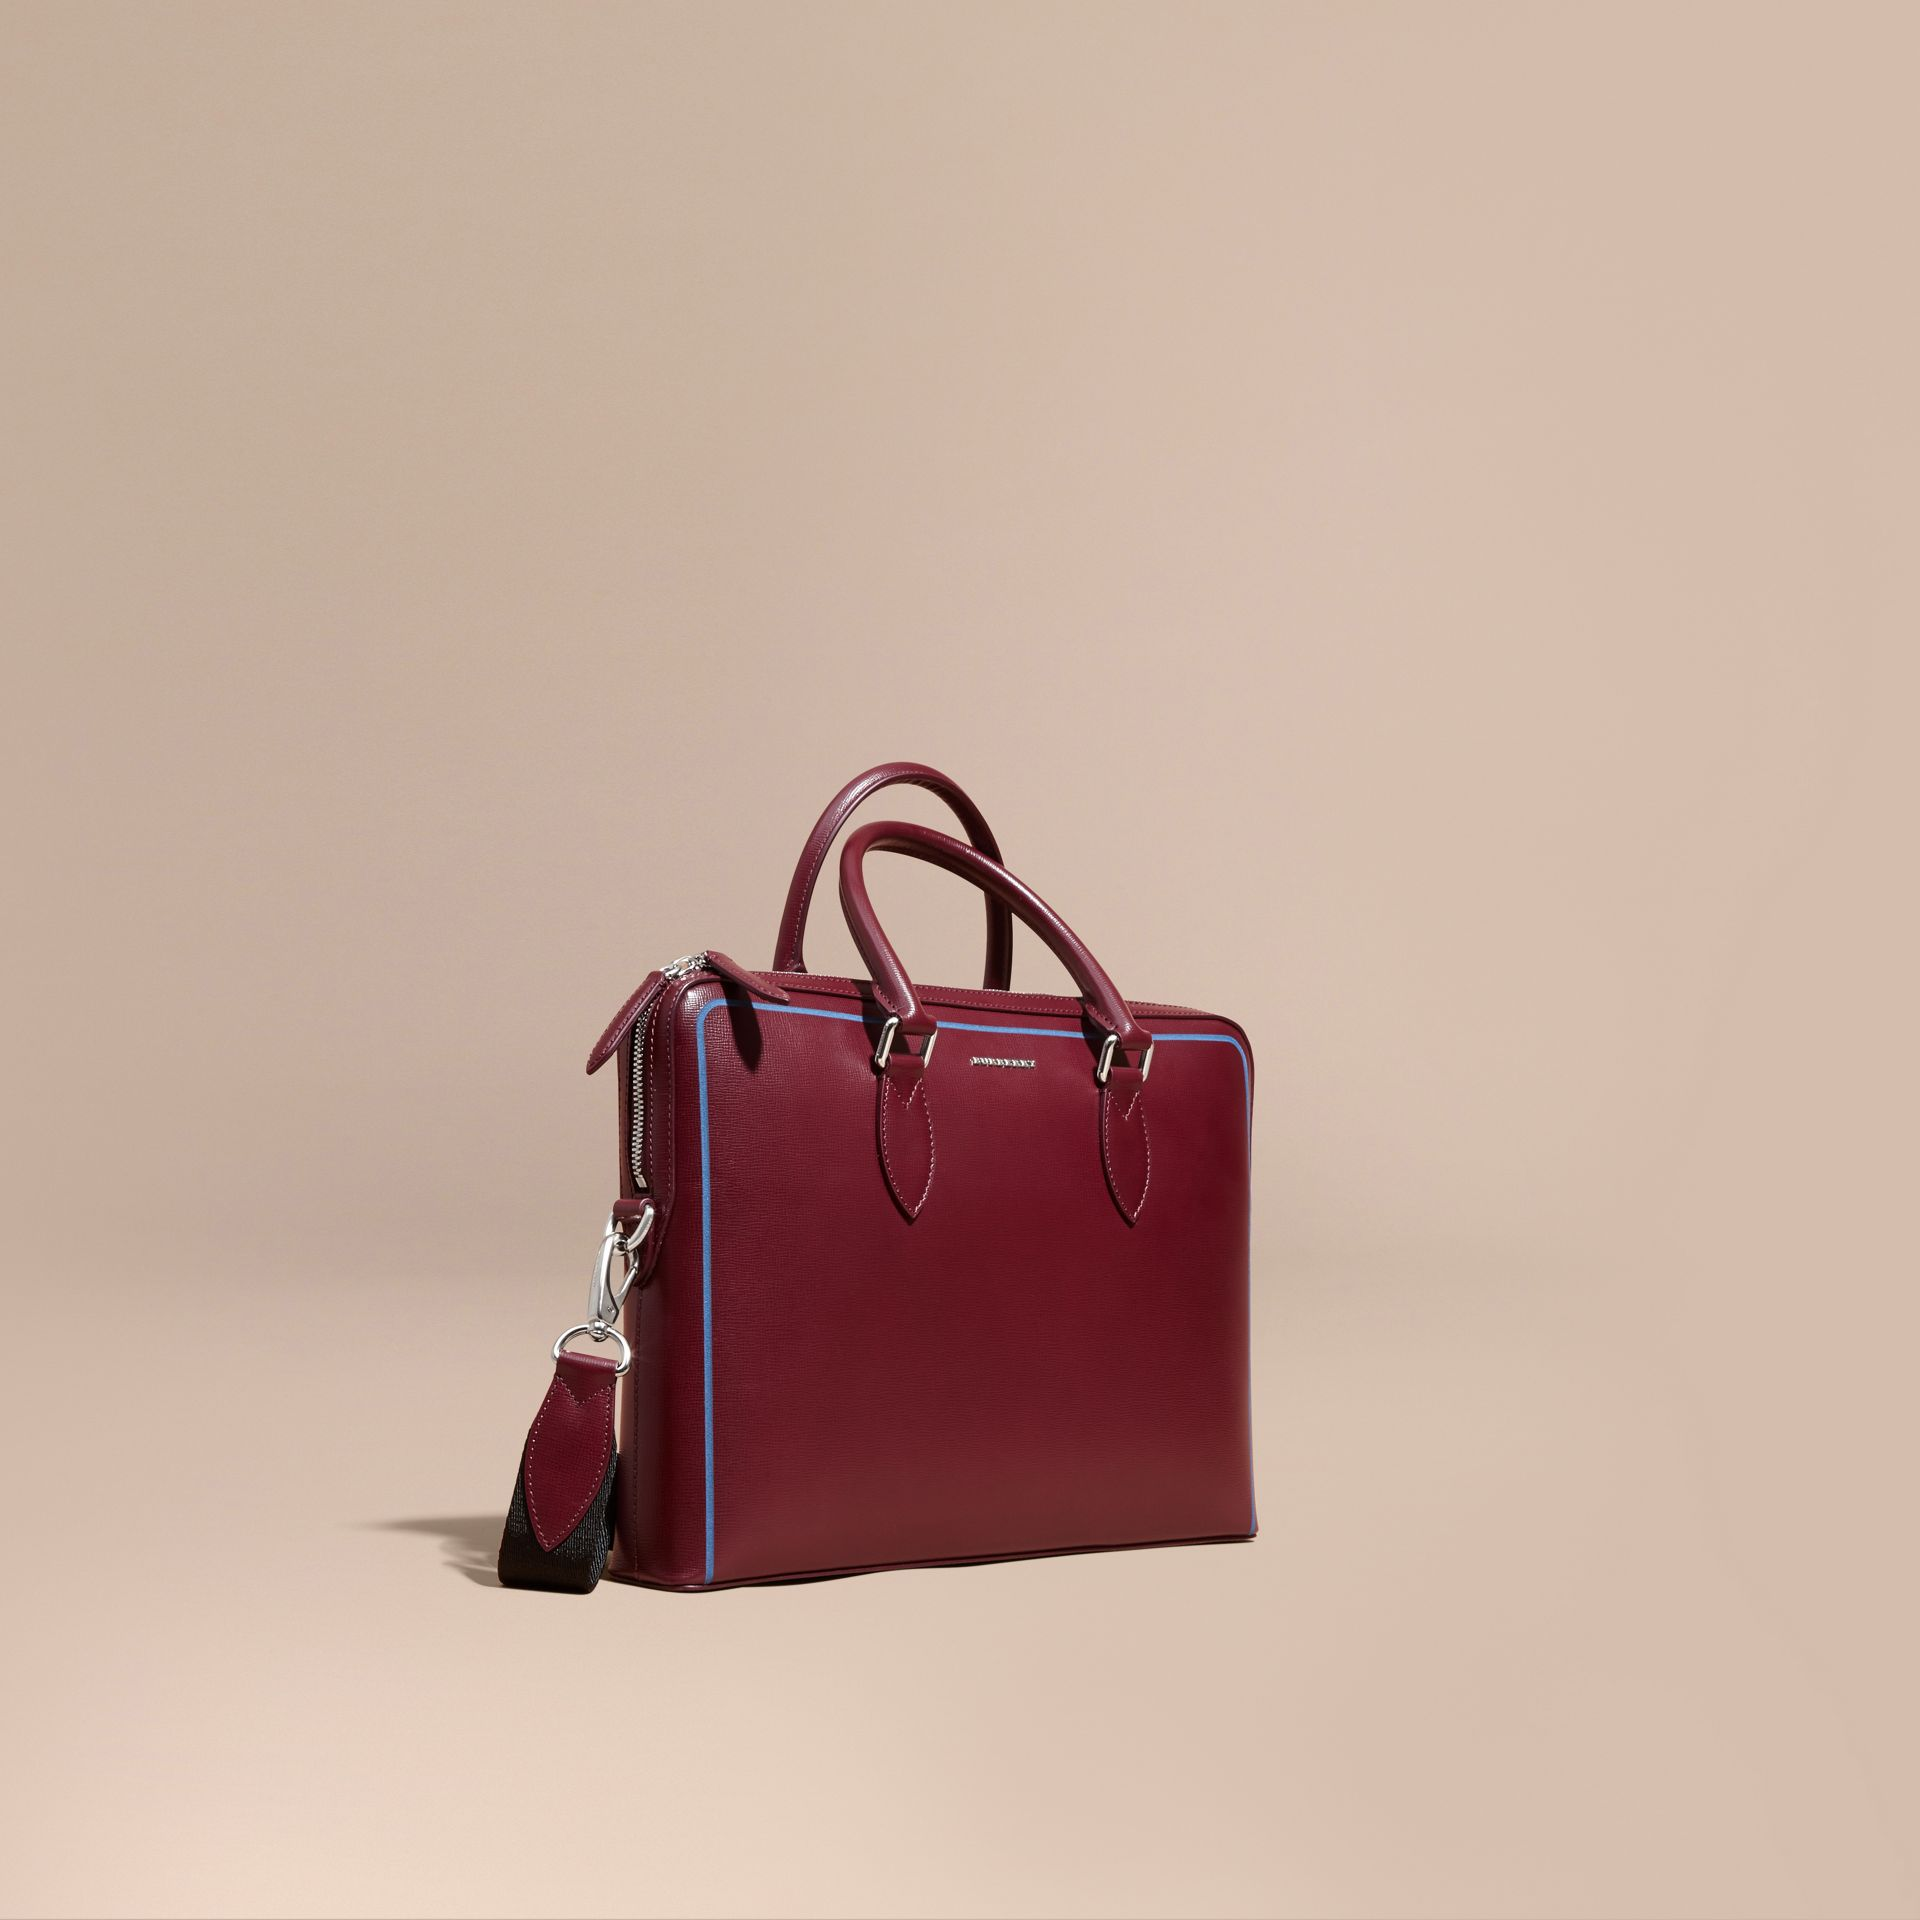 Burgundy red The Slim Barrow Bag in London Leather with Border Detail Burgundy Red - gallery image 1